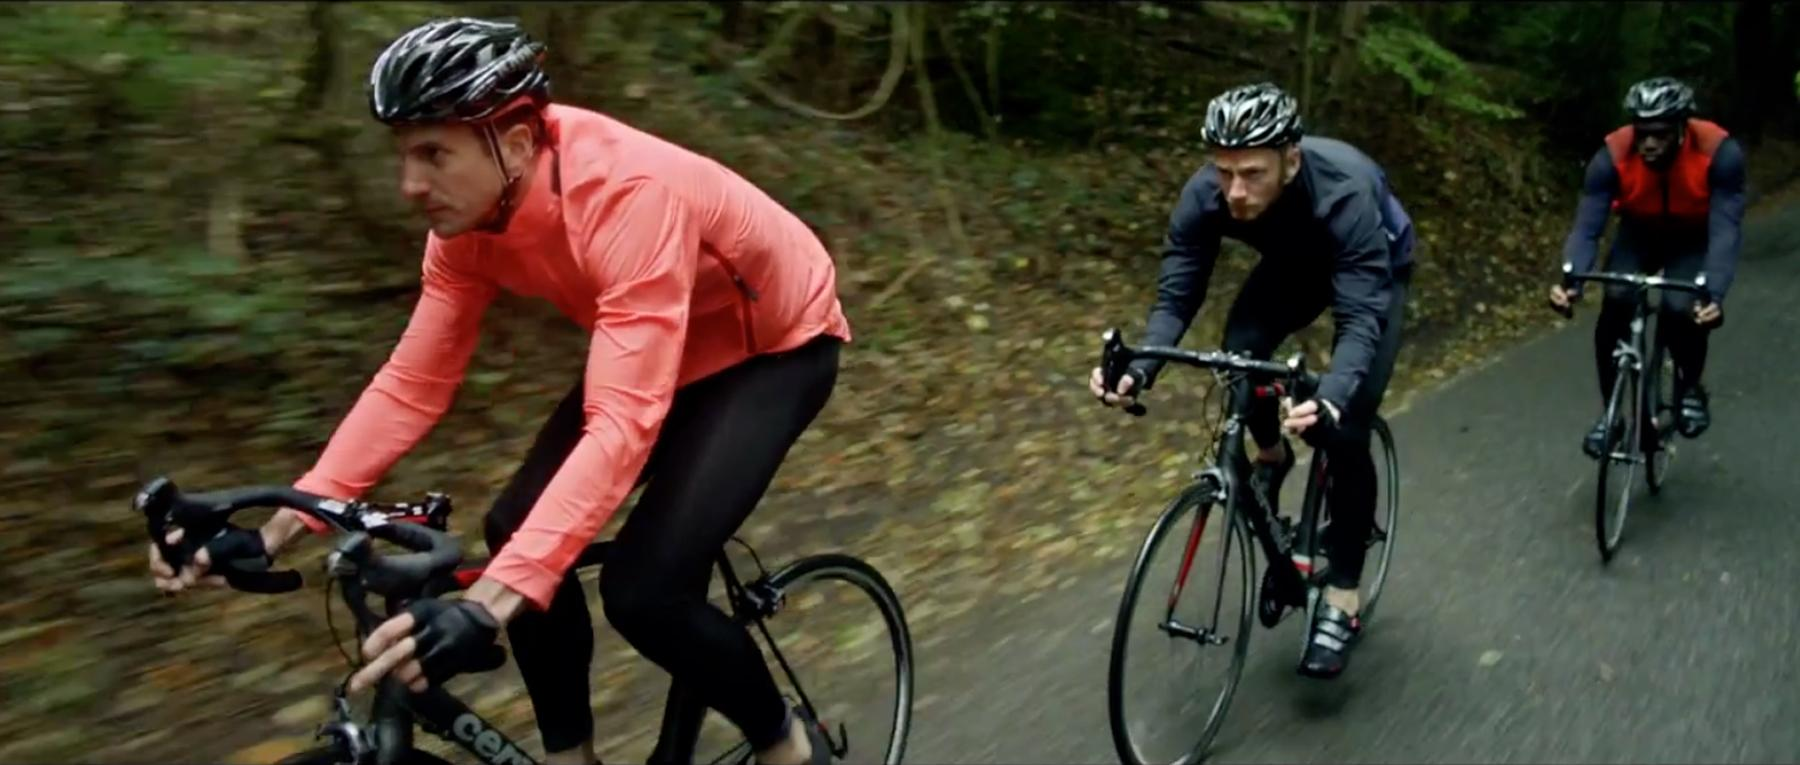 This beautifully filmed ad for Paul Smith cycle wear will make you want to go for a ride http://t.co/OidriWs3l3 http://t.co/Y4tY9sRfjV